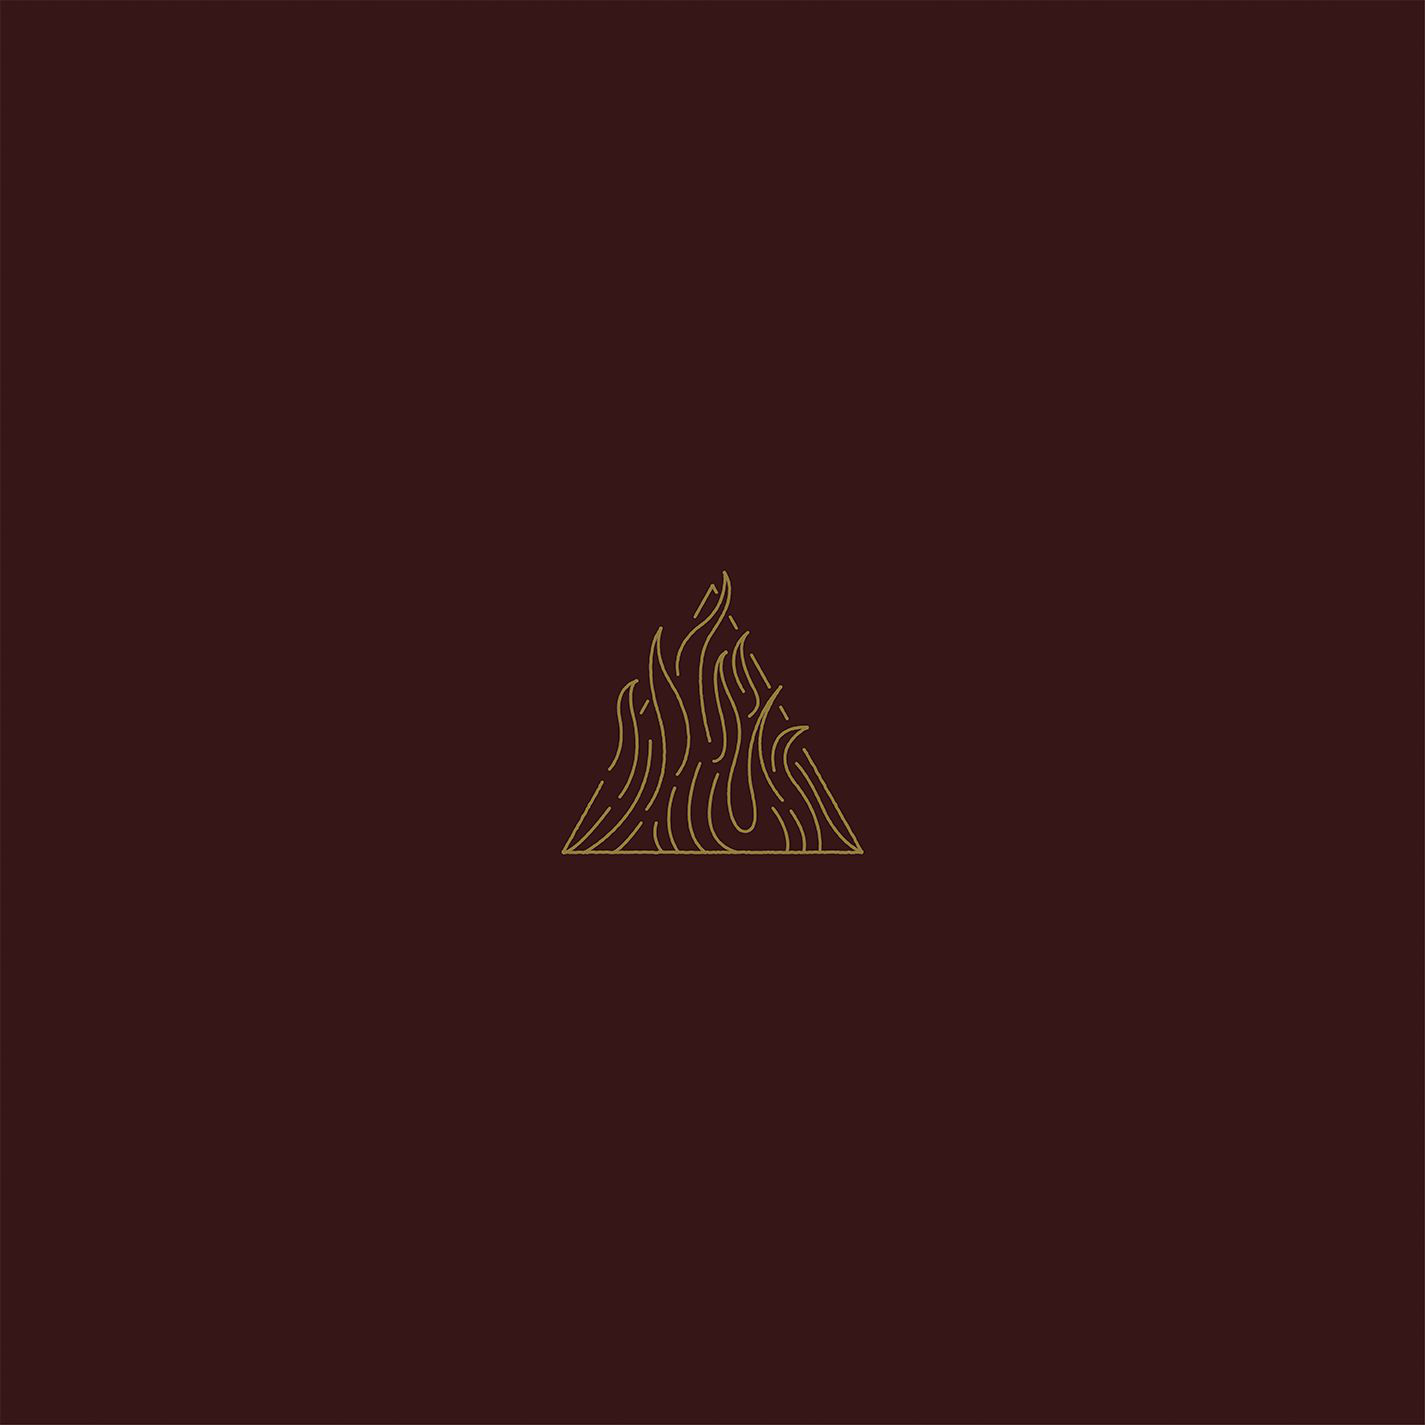 Trivium - The Sin and the Sentence Album Cover